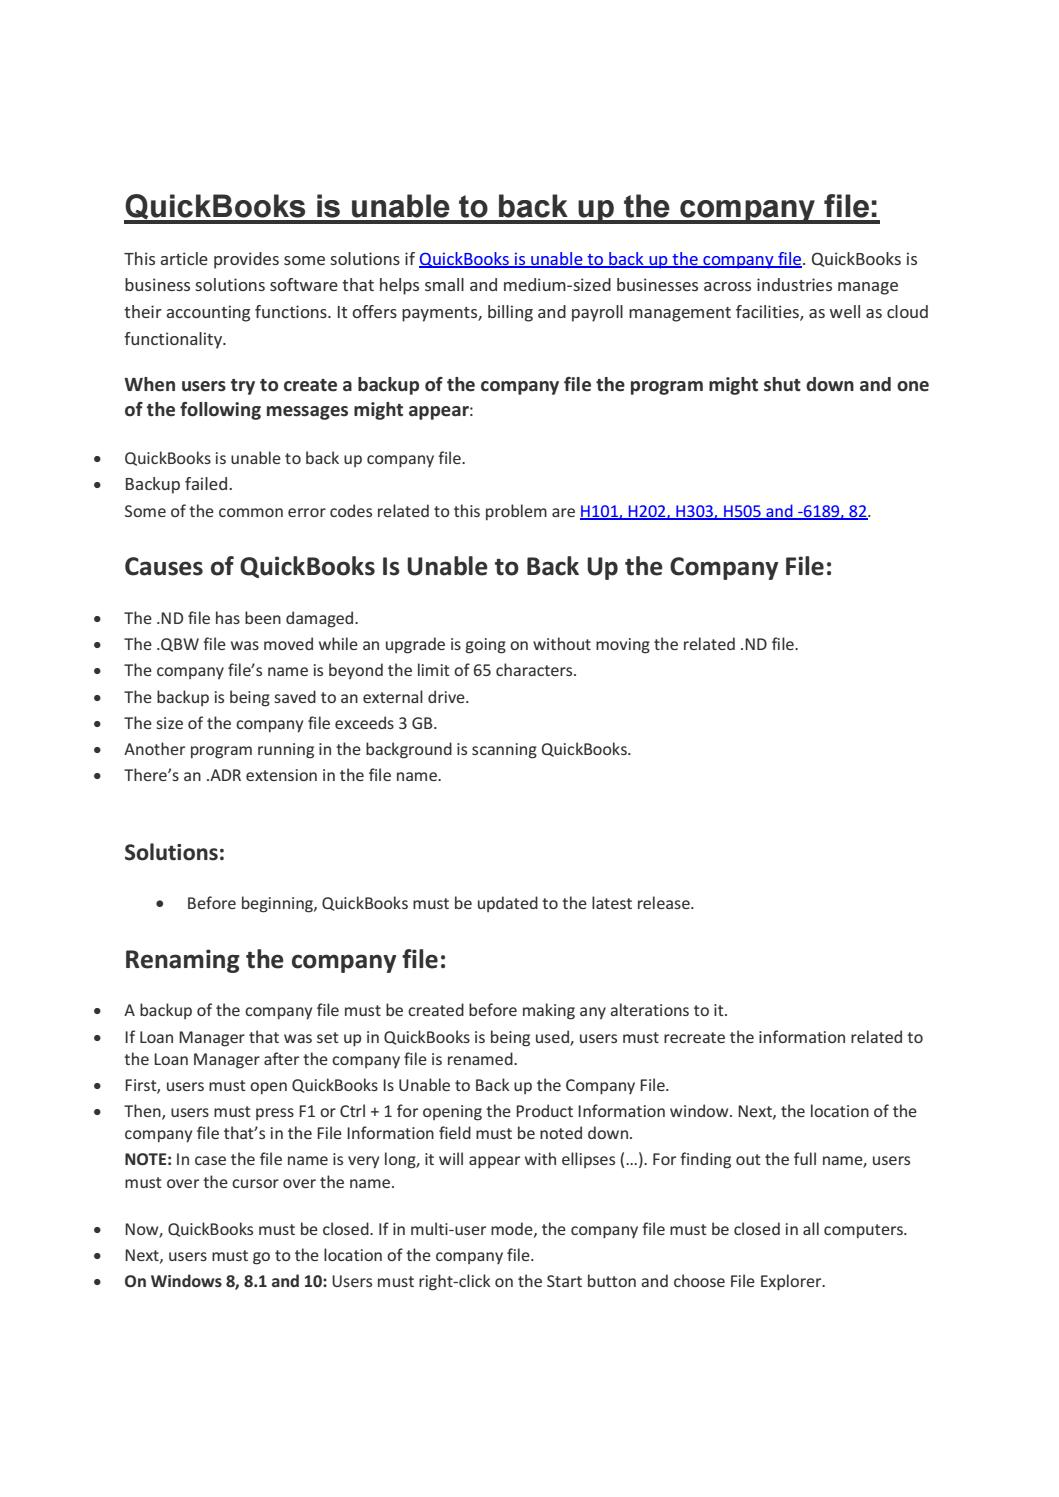 QuickBooks is unable to back up the company file: by Sadio